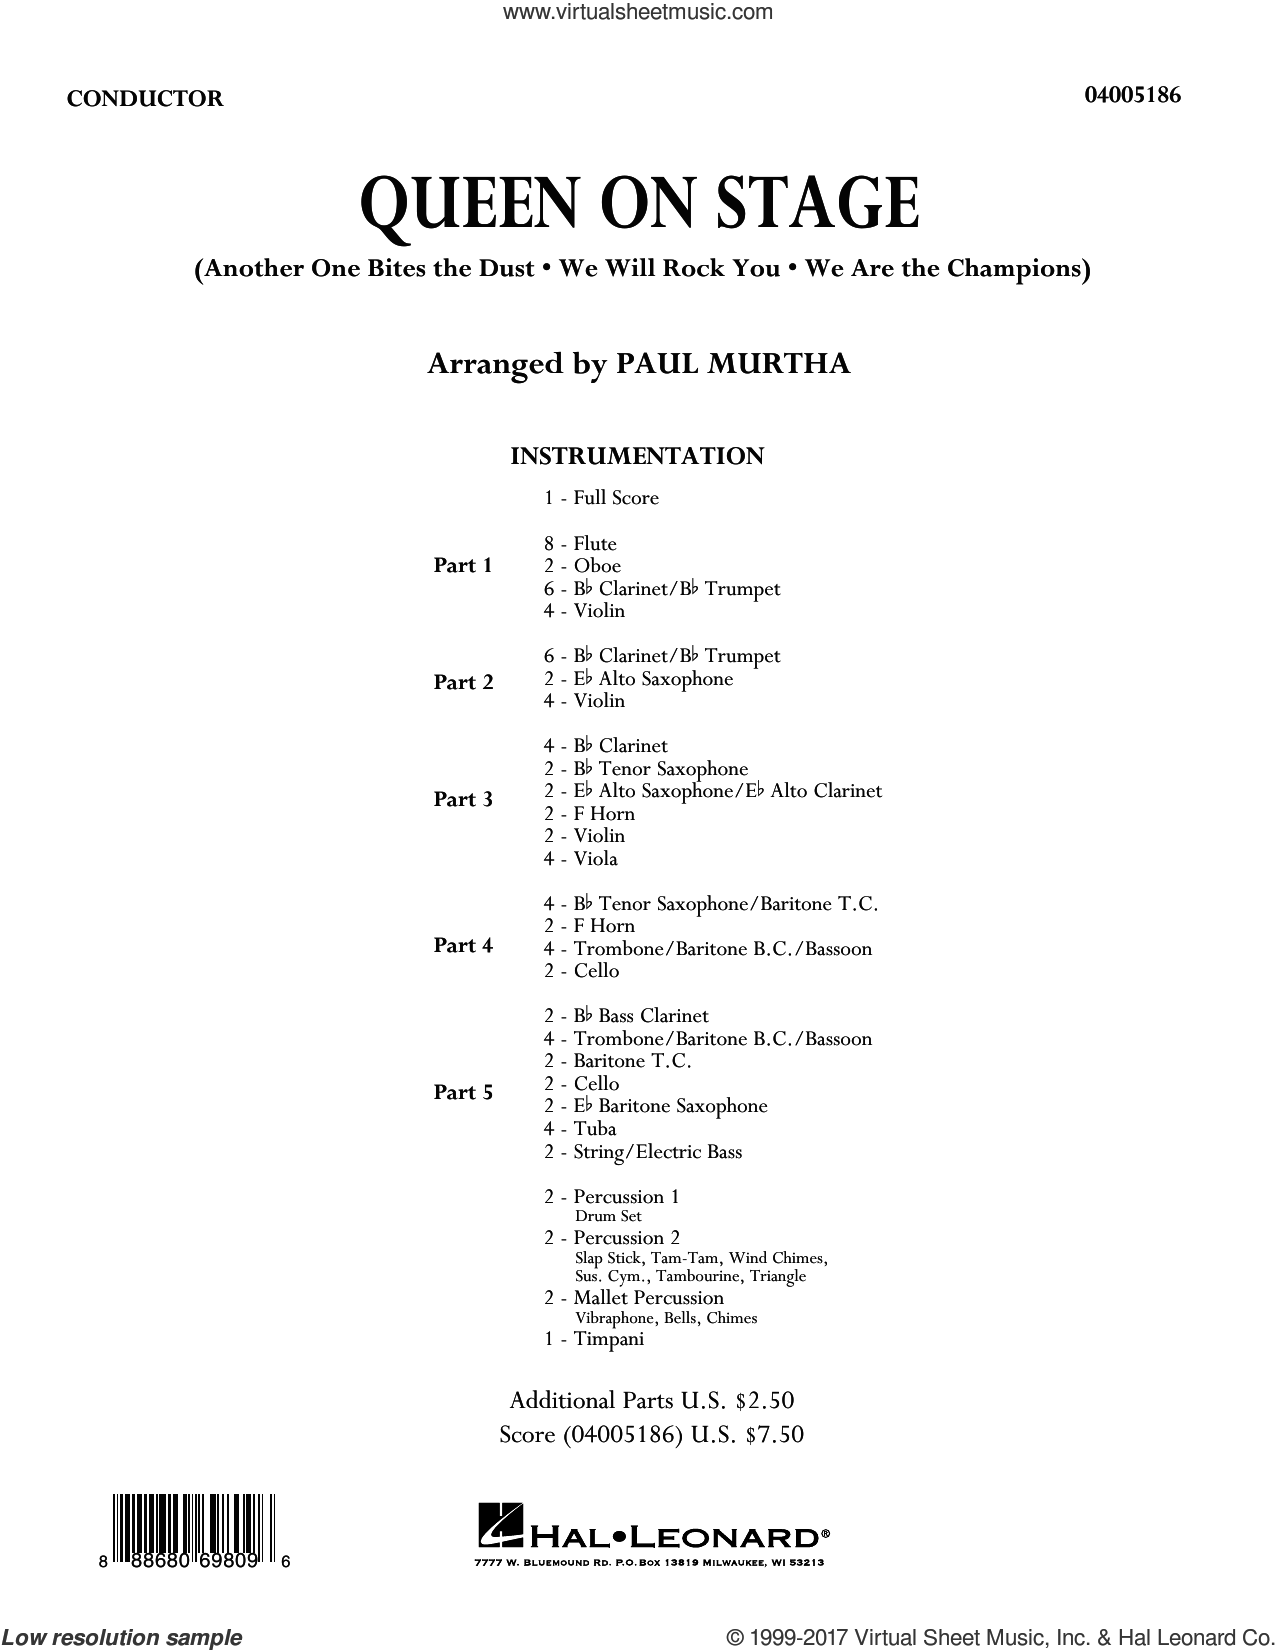 Queen On Stage (COMPLETE) sheet music for concert band by Paul Murtha, intermediate skill level